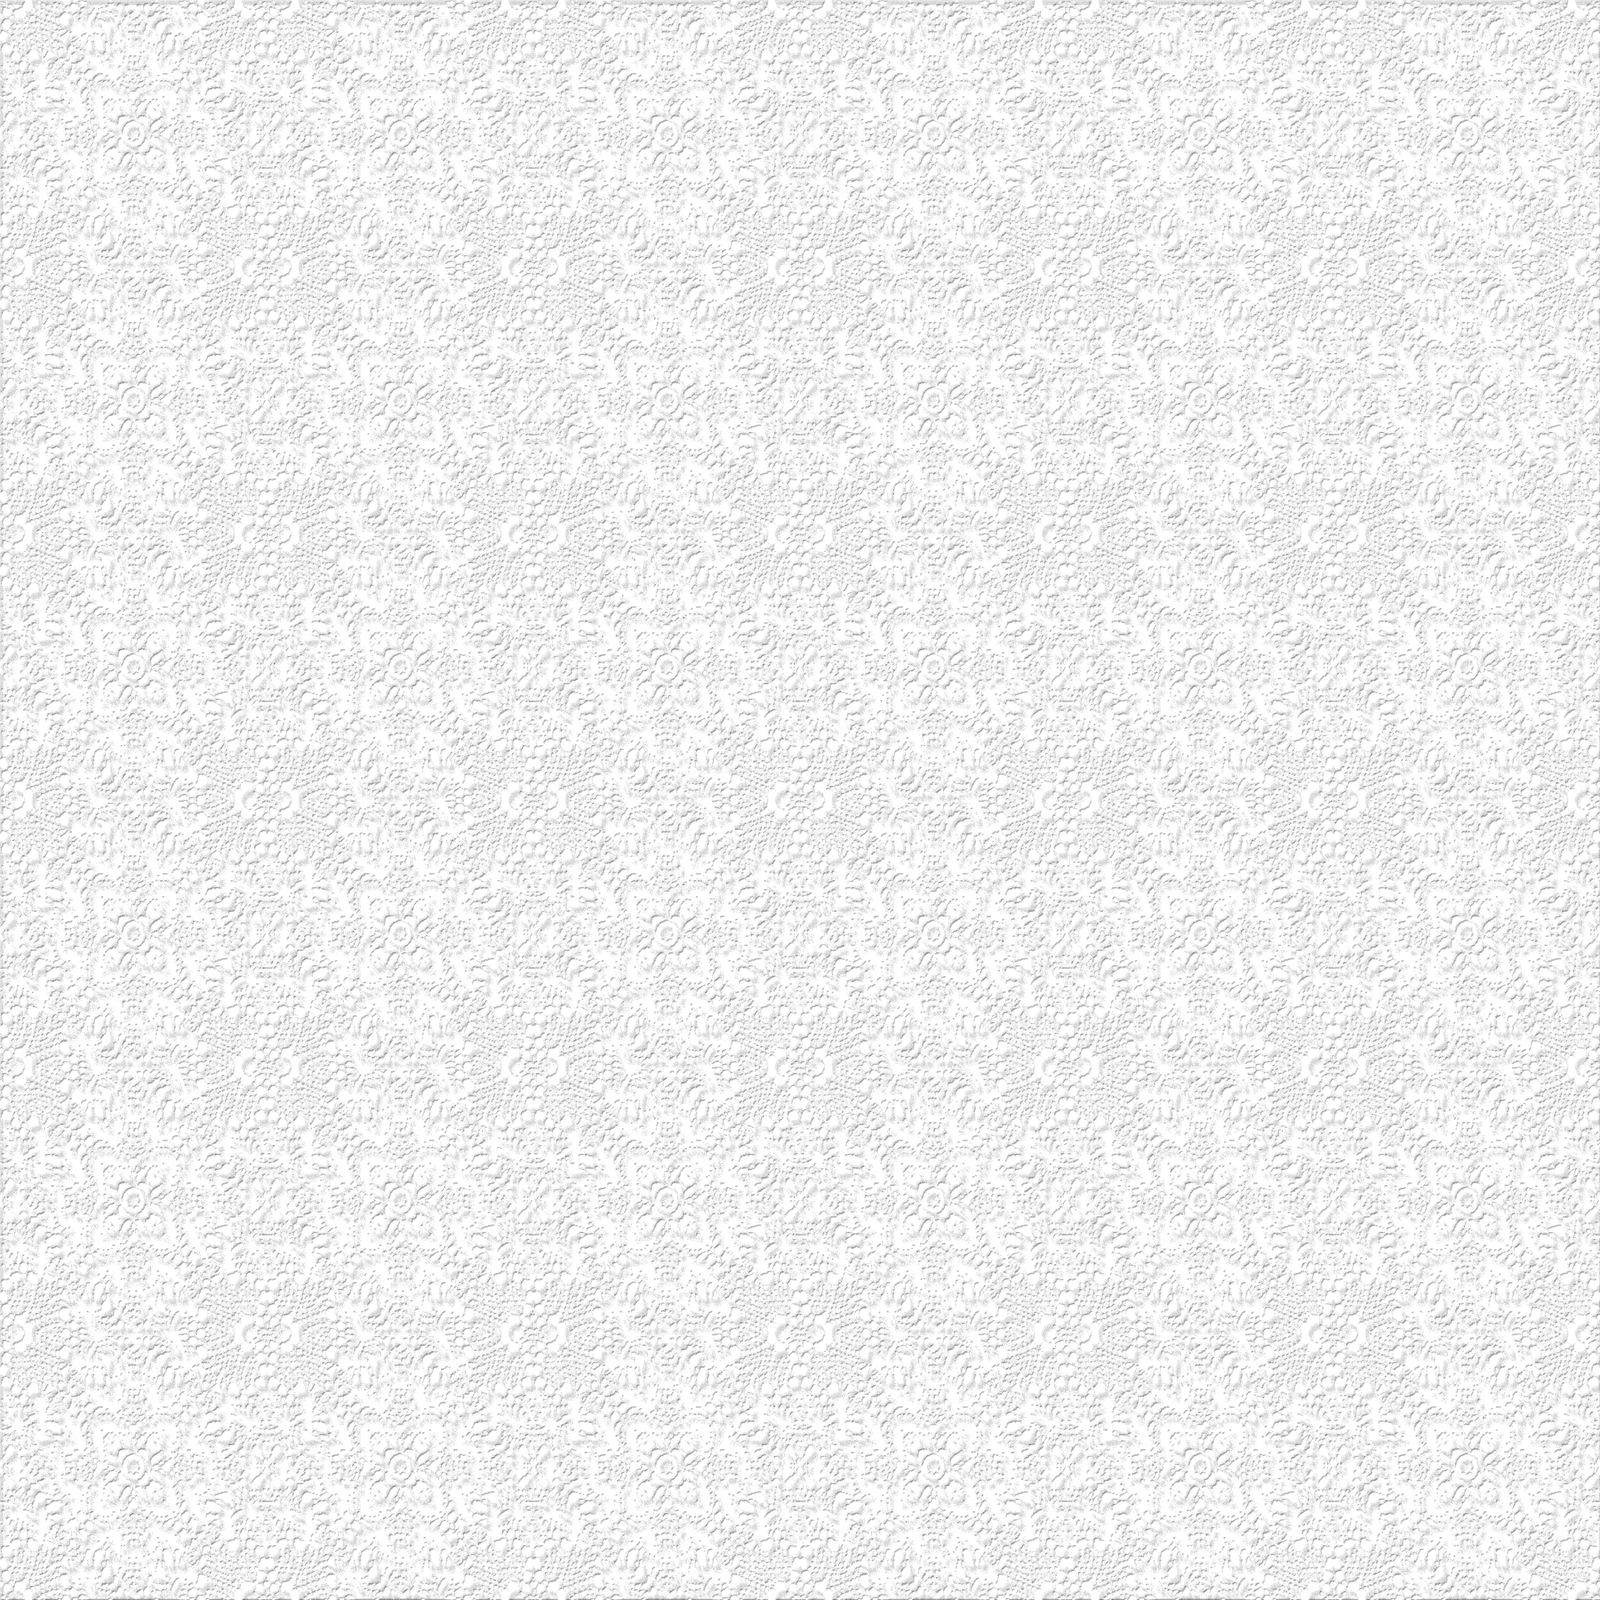 clipart royalty free download Simple lace patterns clipart. Png transparent images httpslhgoogleusercontent.